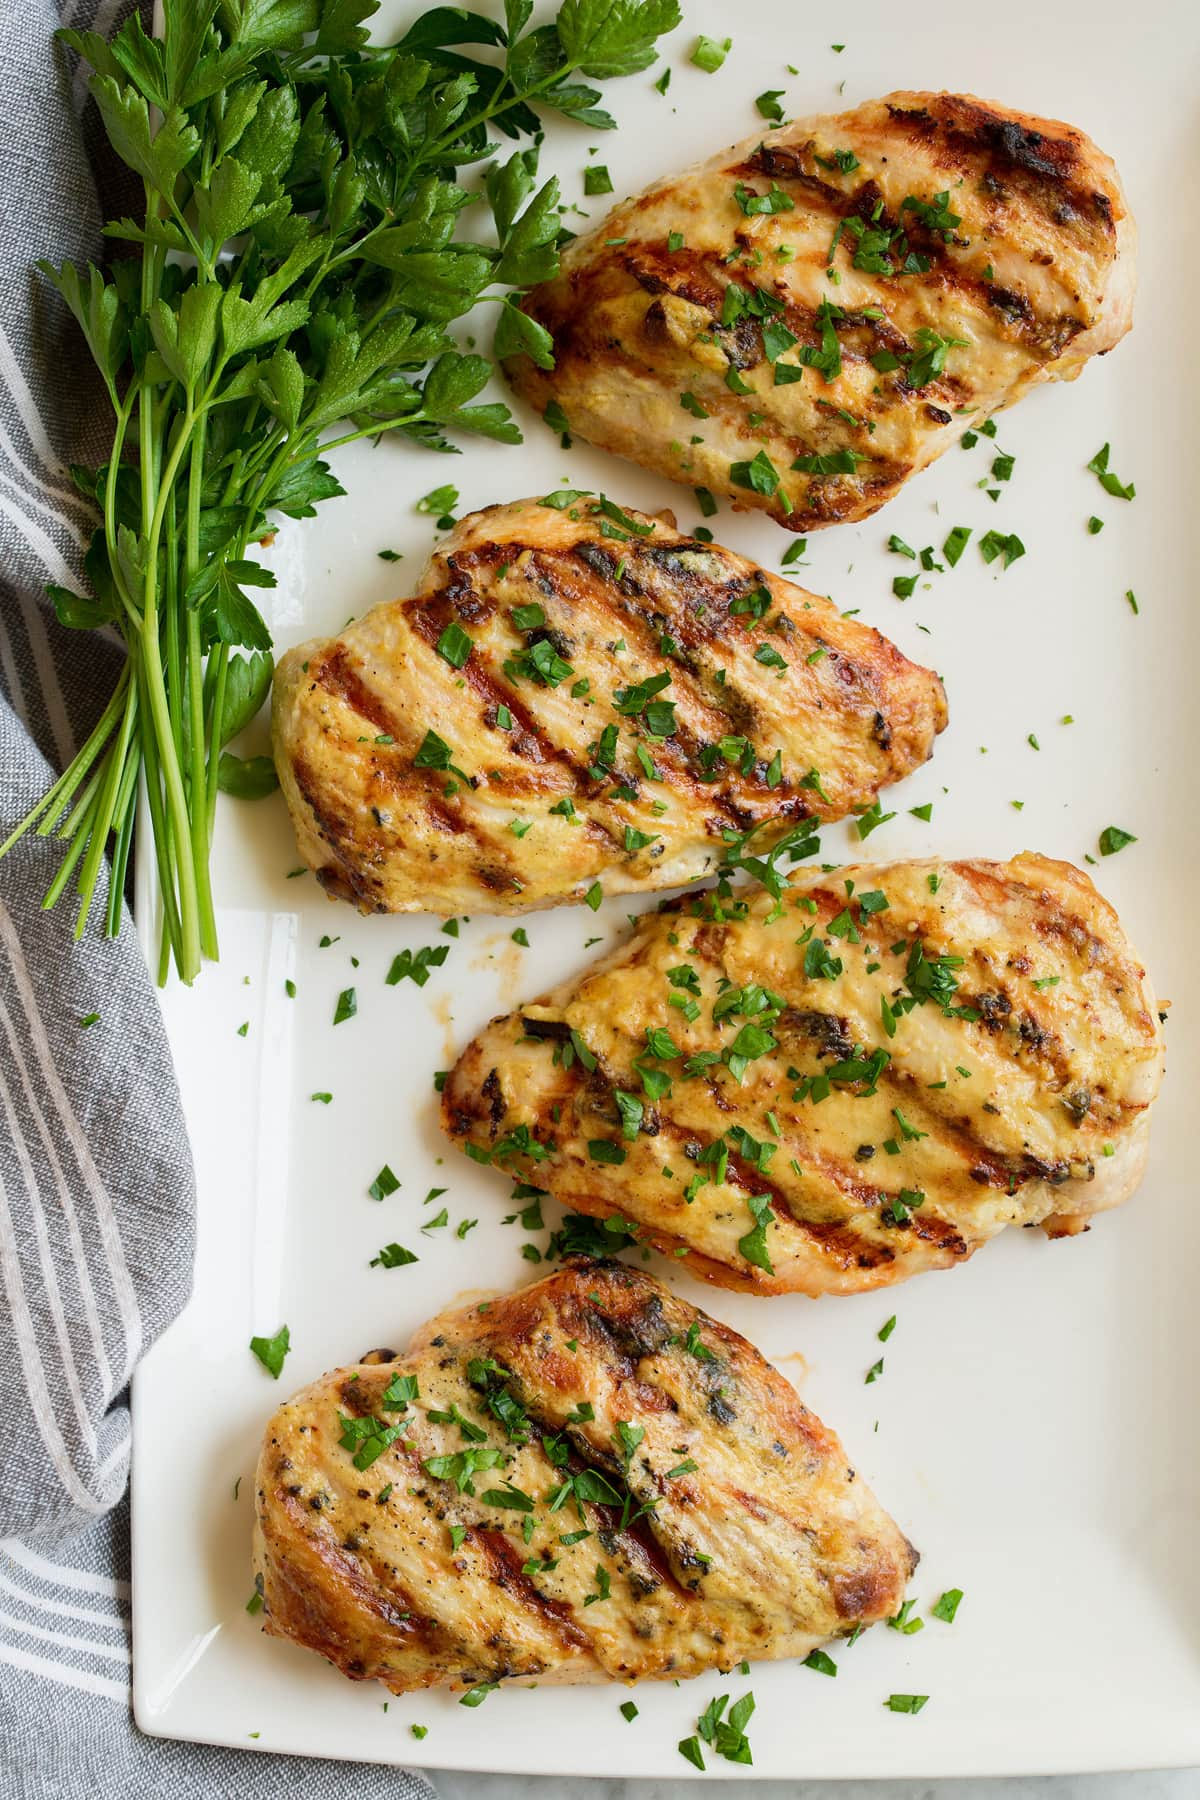 Overhead image of four chicken breasts that have been coated with a dijon mustard sauce and grilled. Chicken is resting on a rectangular white platter with a side of parsley.